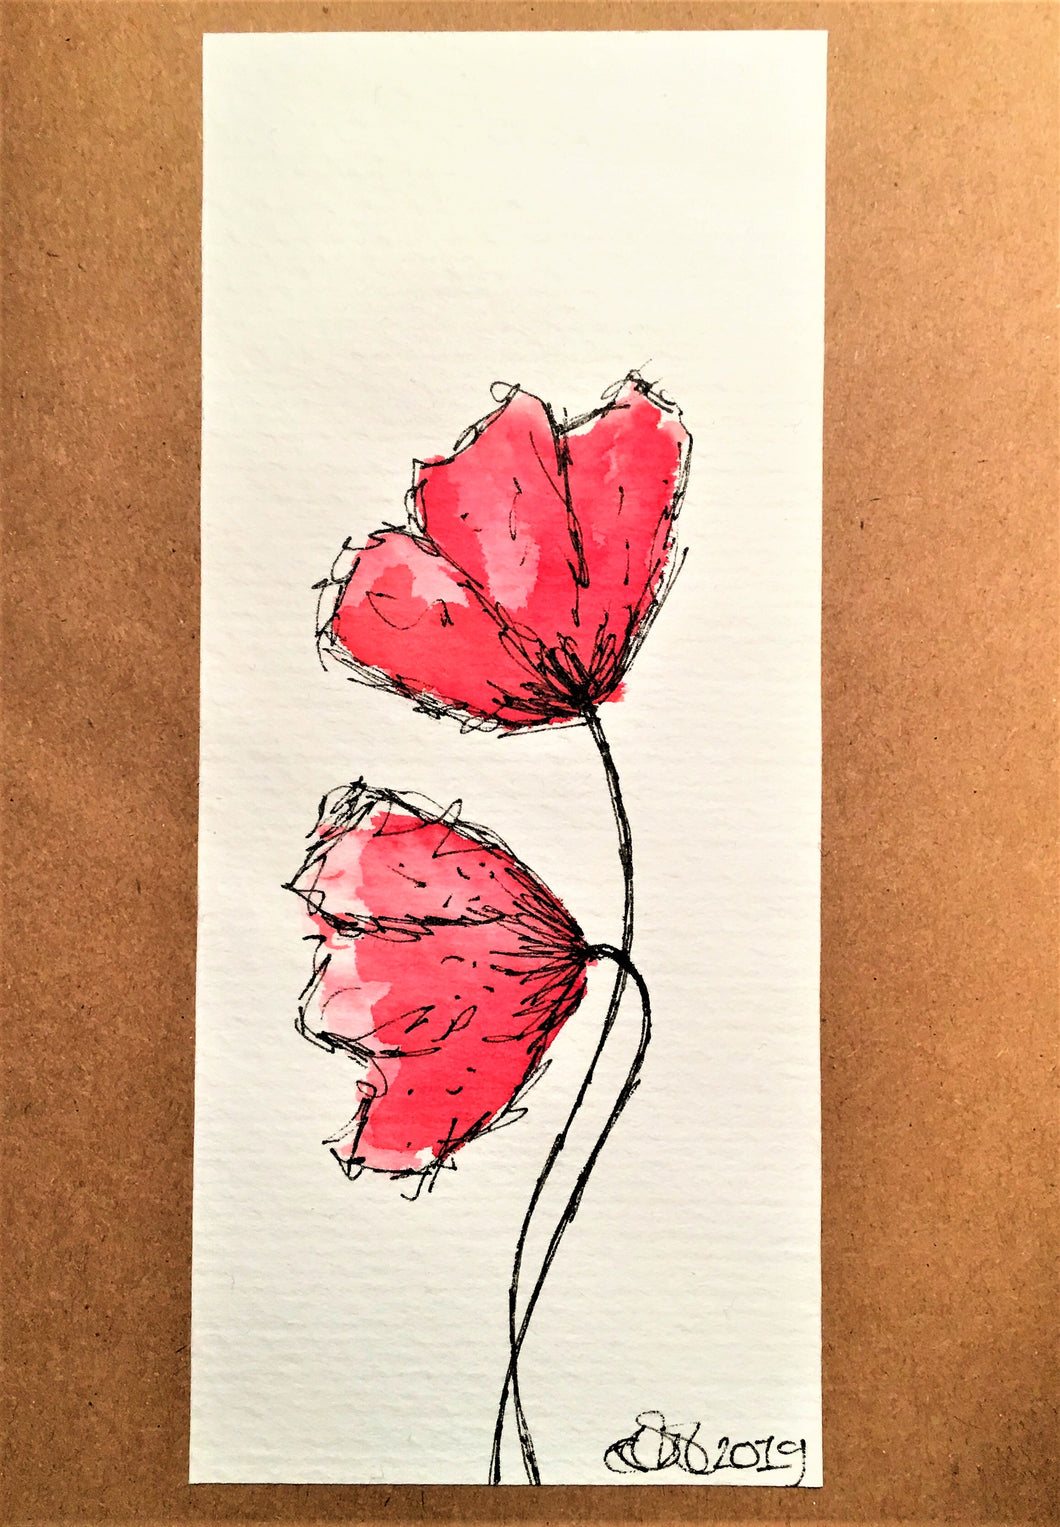 Handpainted Watercolour Greeting Card - Two Abstract Red/Pink Poppies Design - eDgE dEsiGn London